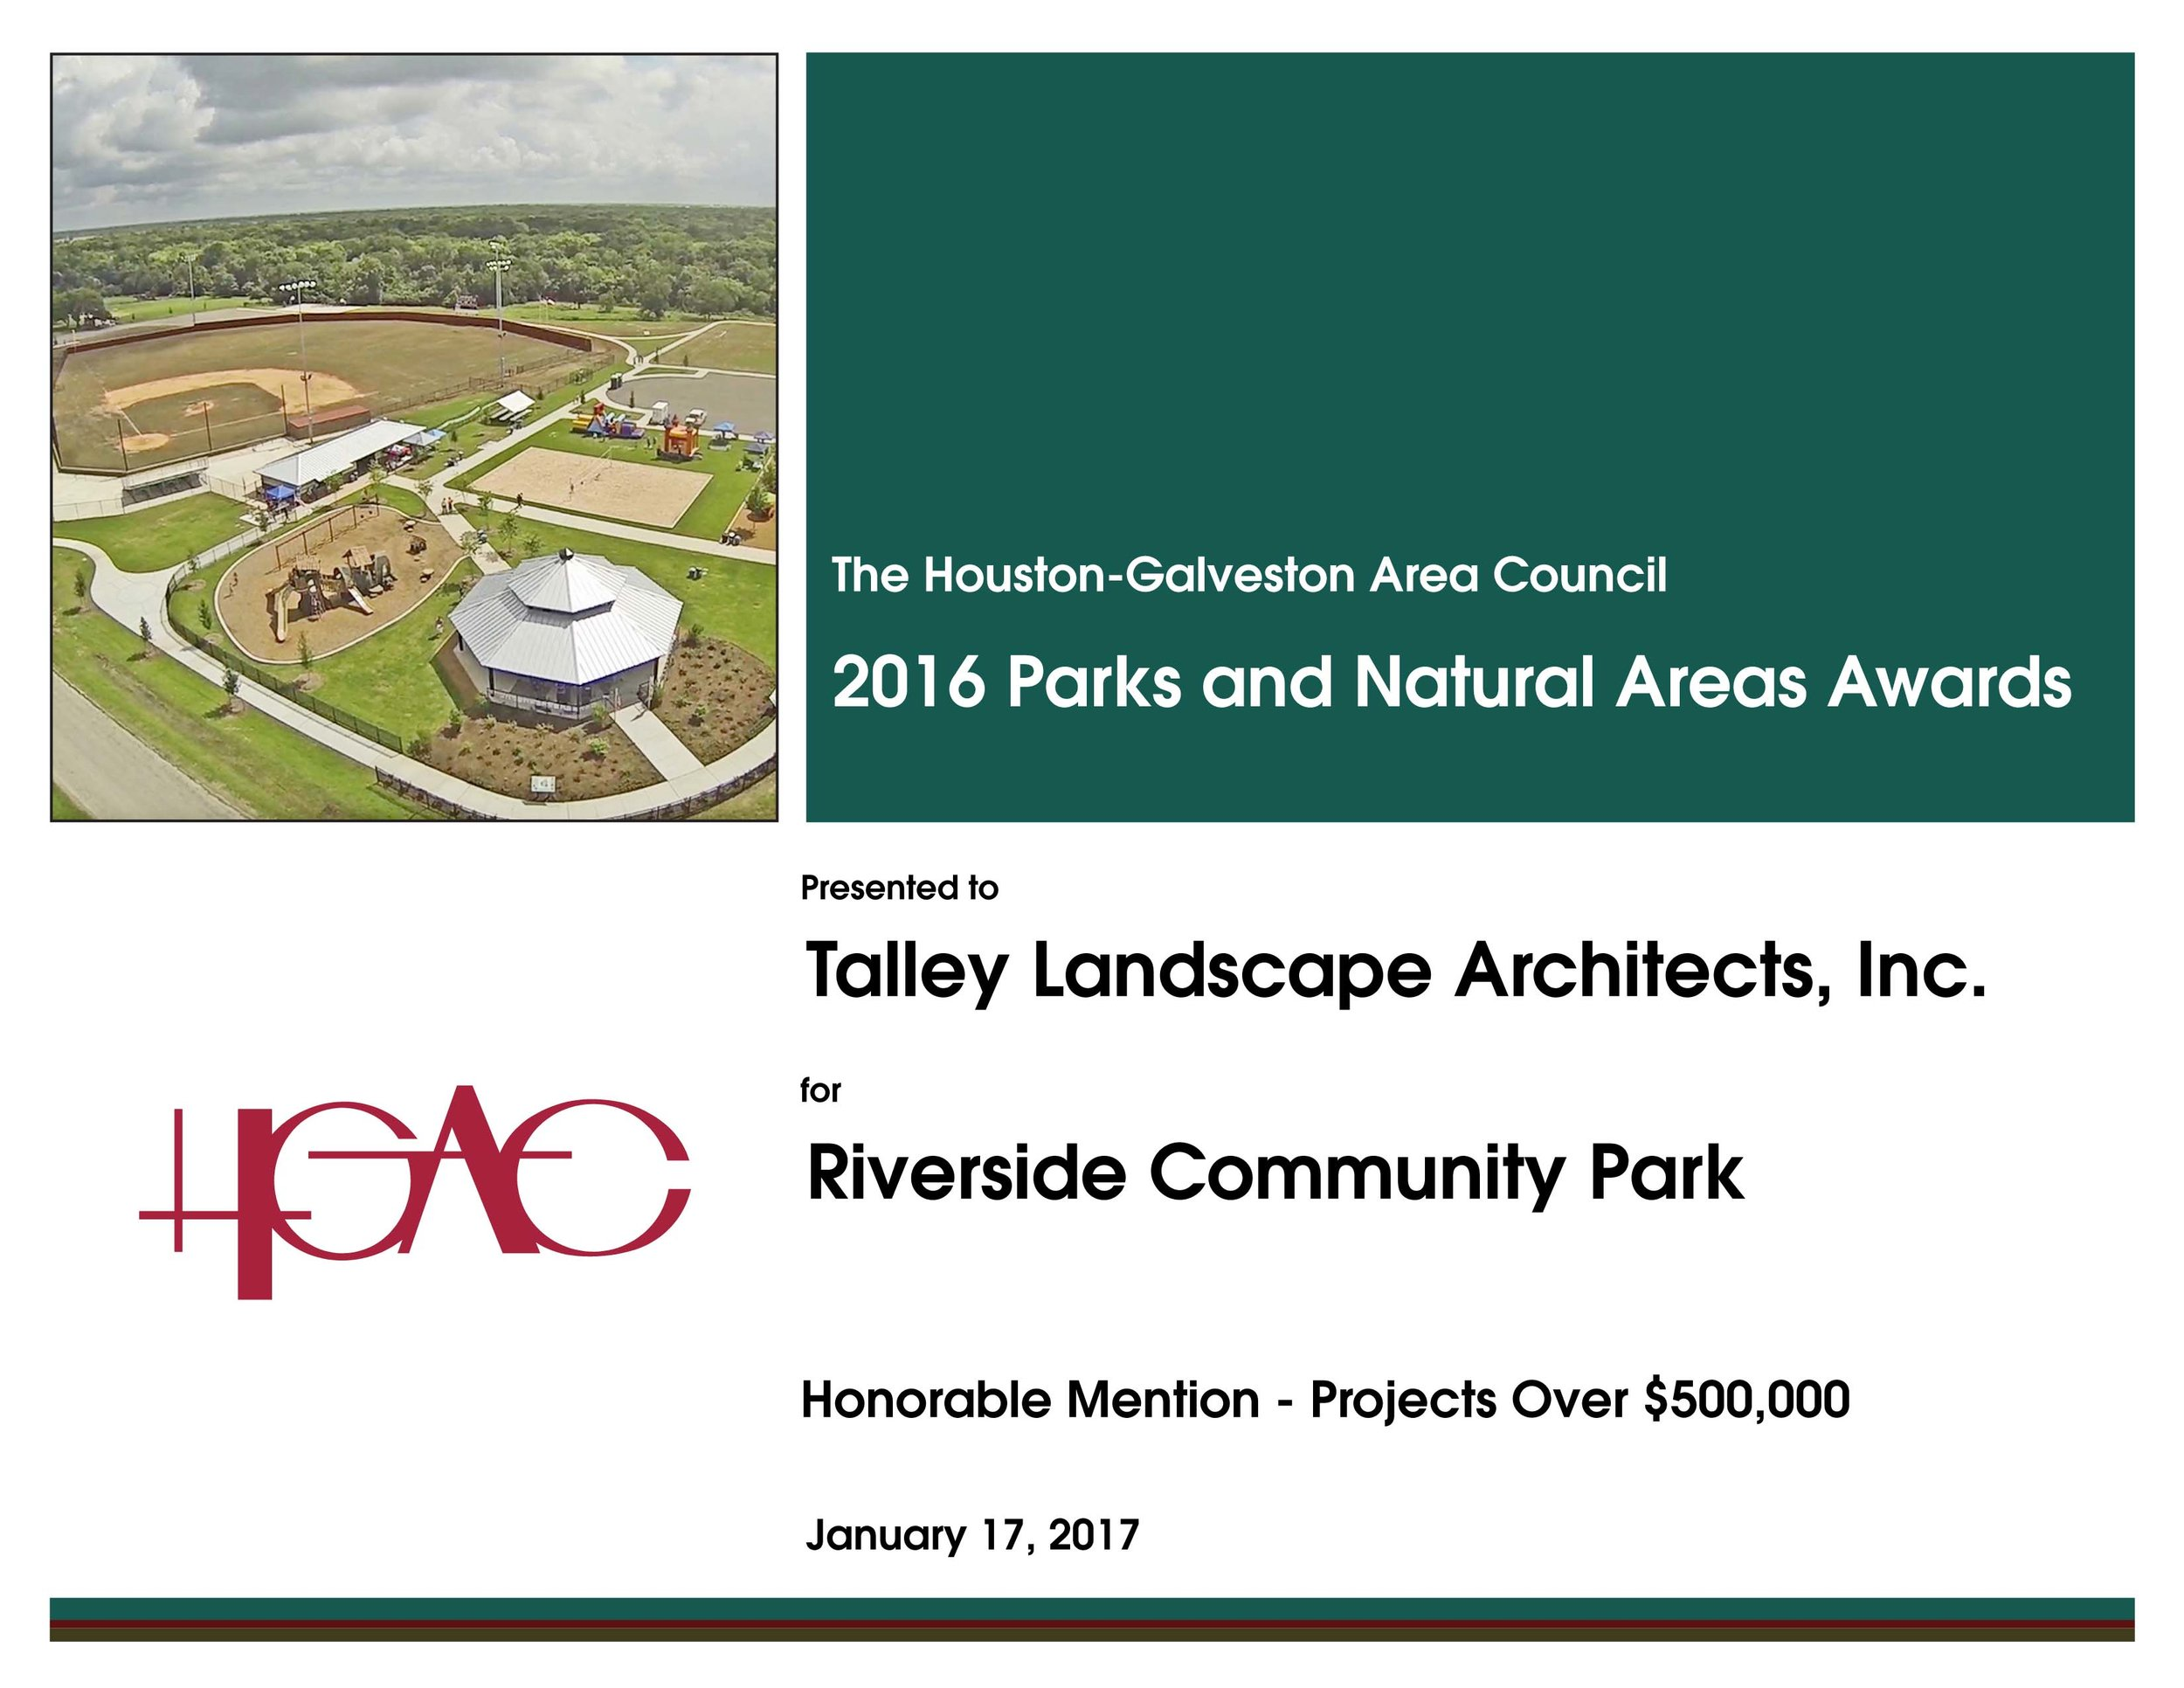 - TLA is happy to announce that City of East Bernard's Riverside Community Park won HGAC's Parks and Natural Areas Award for On-The-Ground Projects Over $500,000. Thank you Houston-Galveston Area Council